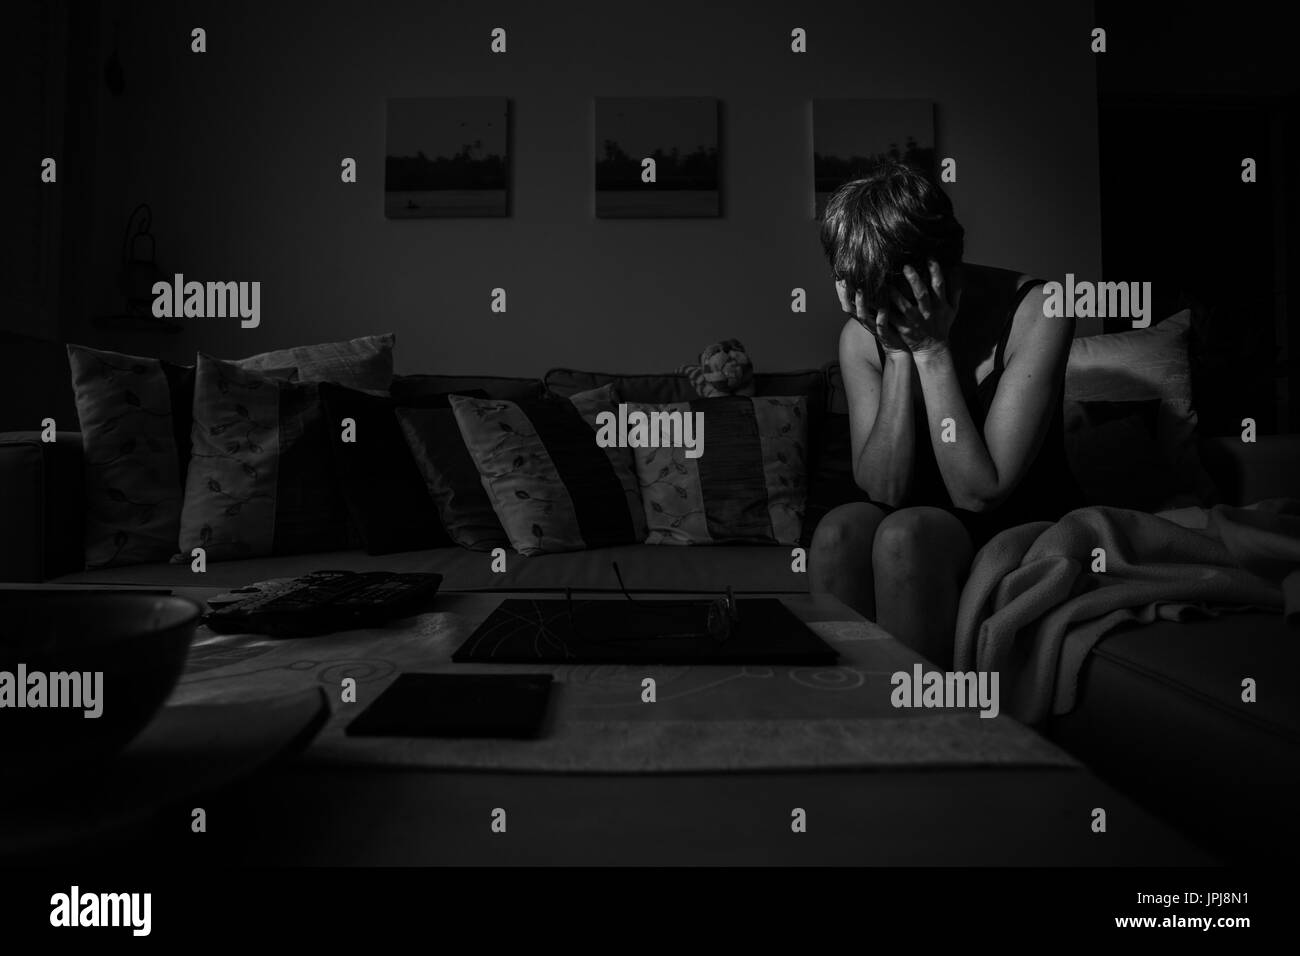 Depressed woman, head in hands, crying in despair, showing what it feels like living with Depression and Anxiety. - Stock Image